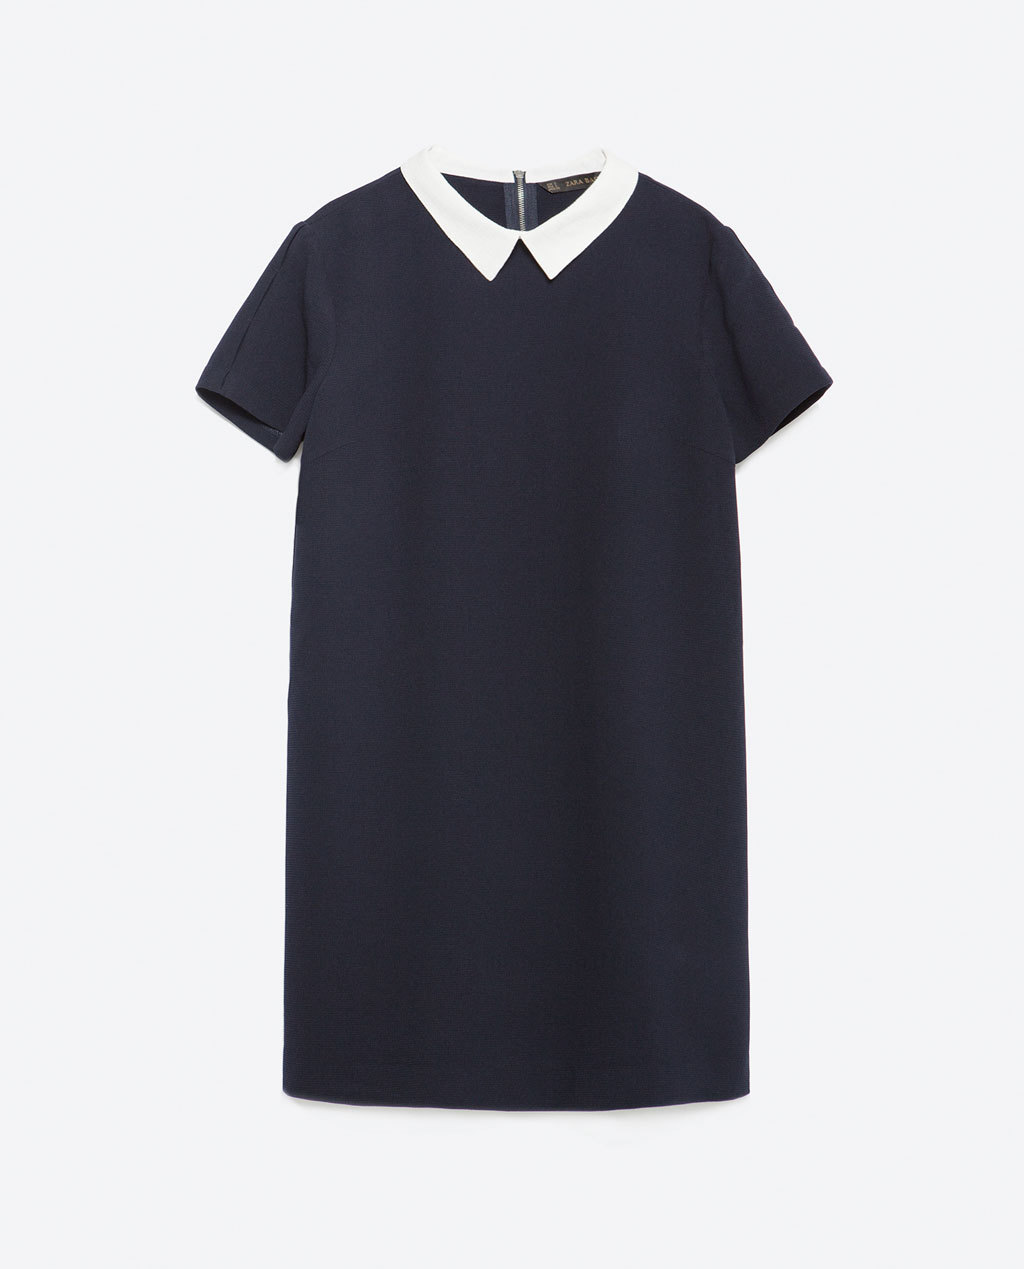 Dress With Contrasting Collar - style: shift; length: mid thigh; pattern: plain; predominant colour: navy; occasions: casual, work; fit: straight cut; fibres: polyester/polyamide - 100%; neckline: no opening/shirt collar/peter pan; sleeve length: short sleeve; sleeve style: standard; pattern type: fabric; texture group: other - light to midweight; season: a/w 2015